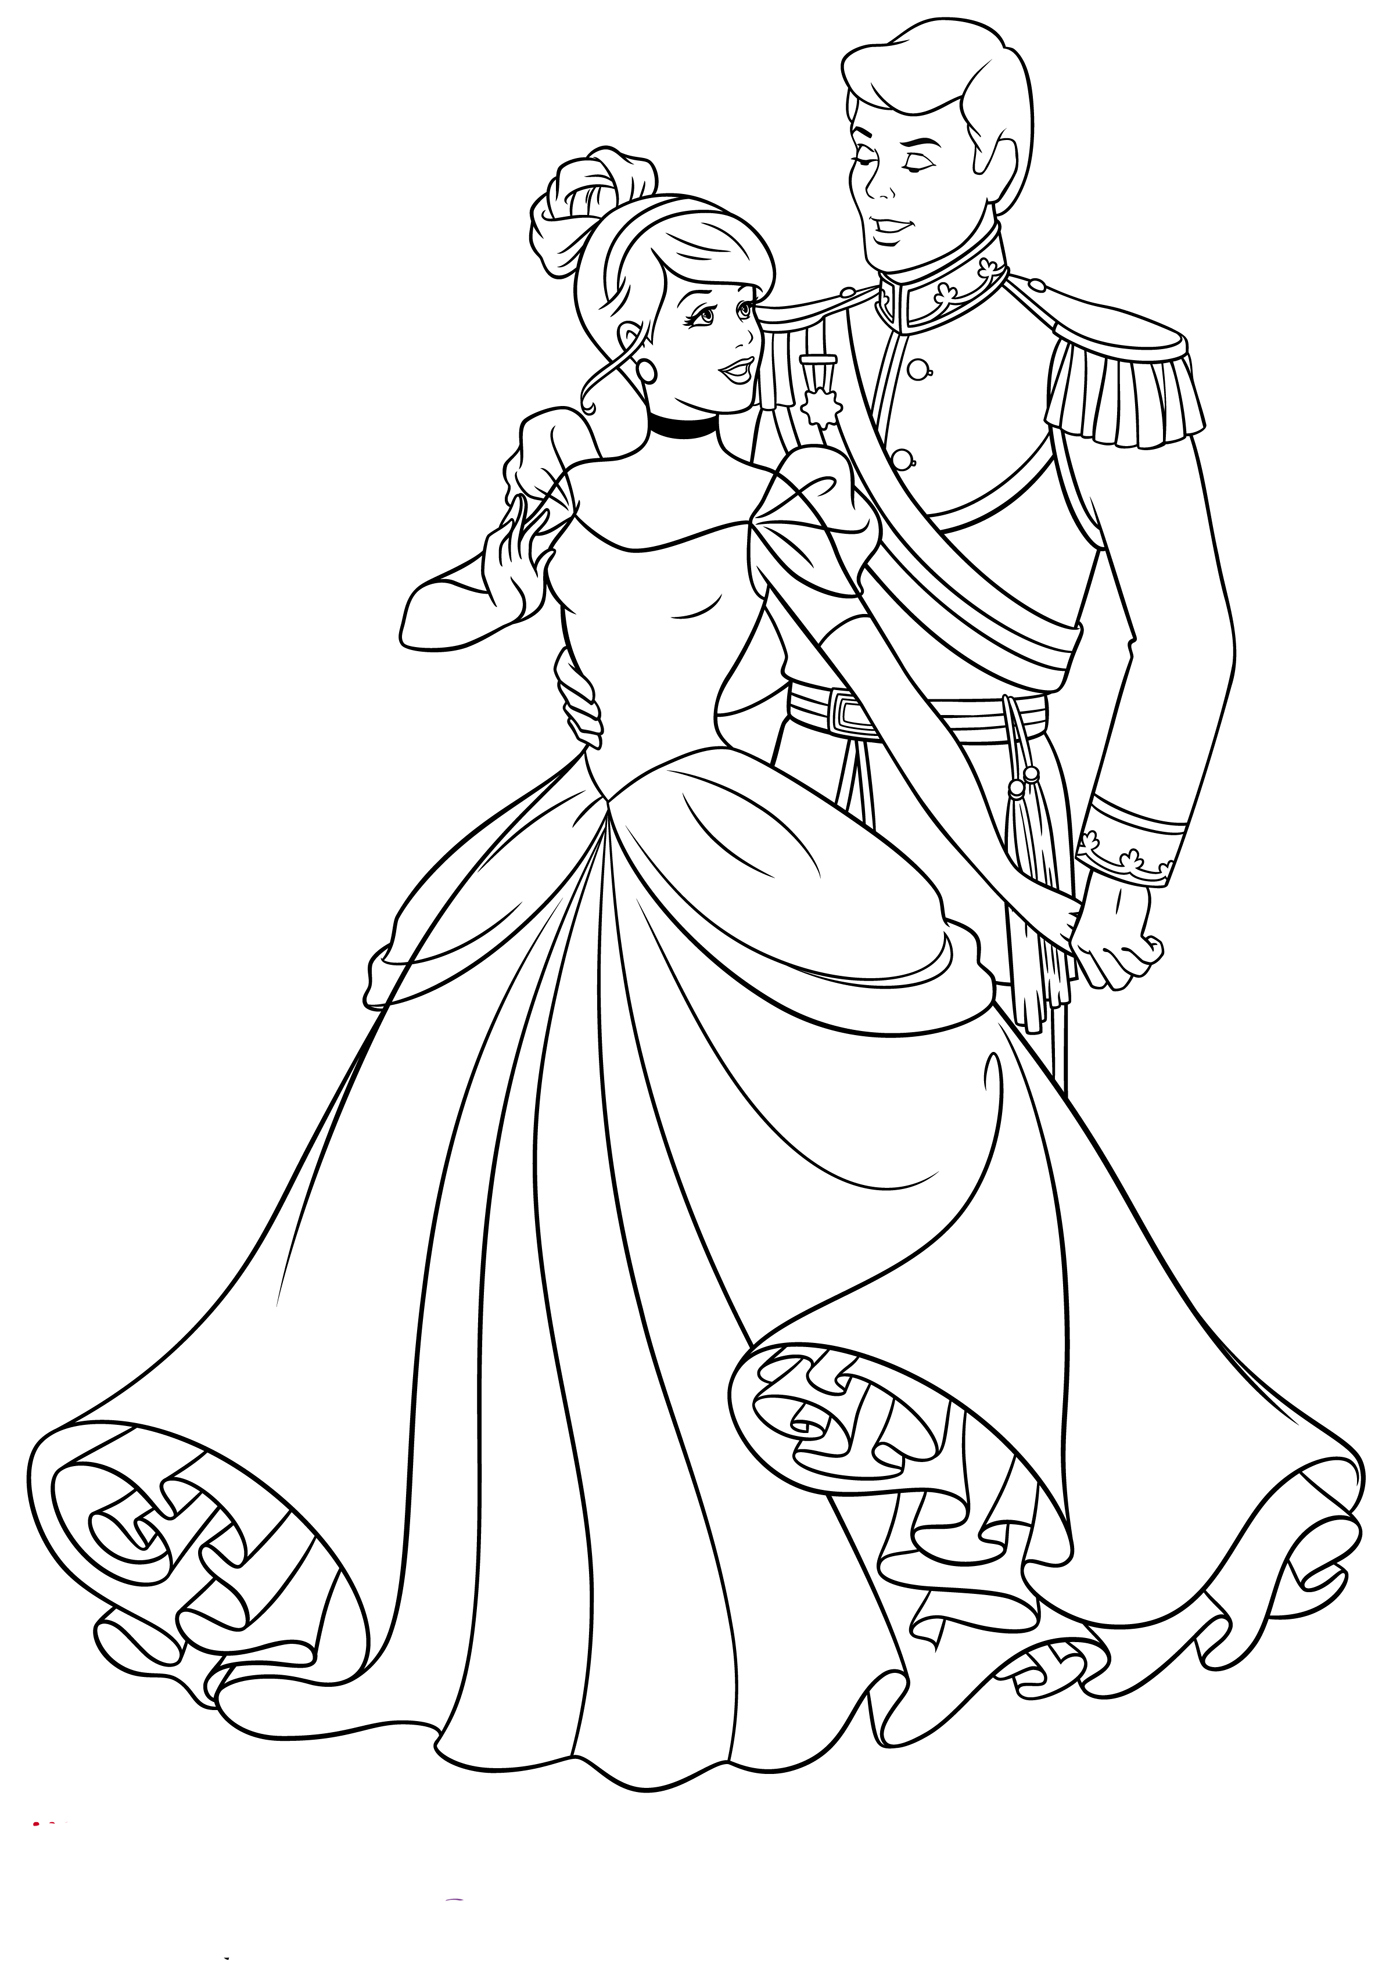 cinderella printable coloring pages cinderella coloring pages to download and print for free cinderella printable coloring pages